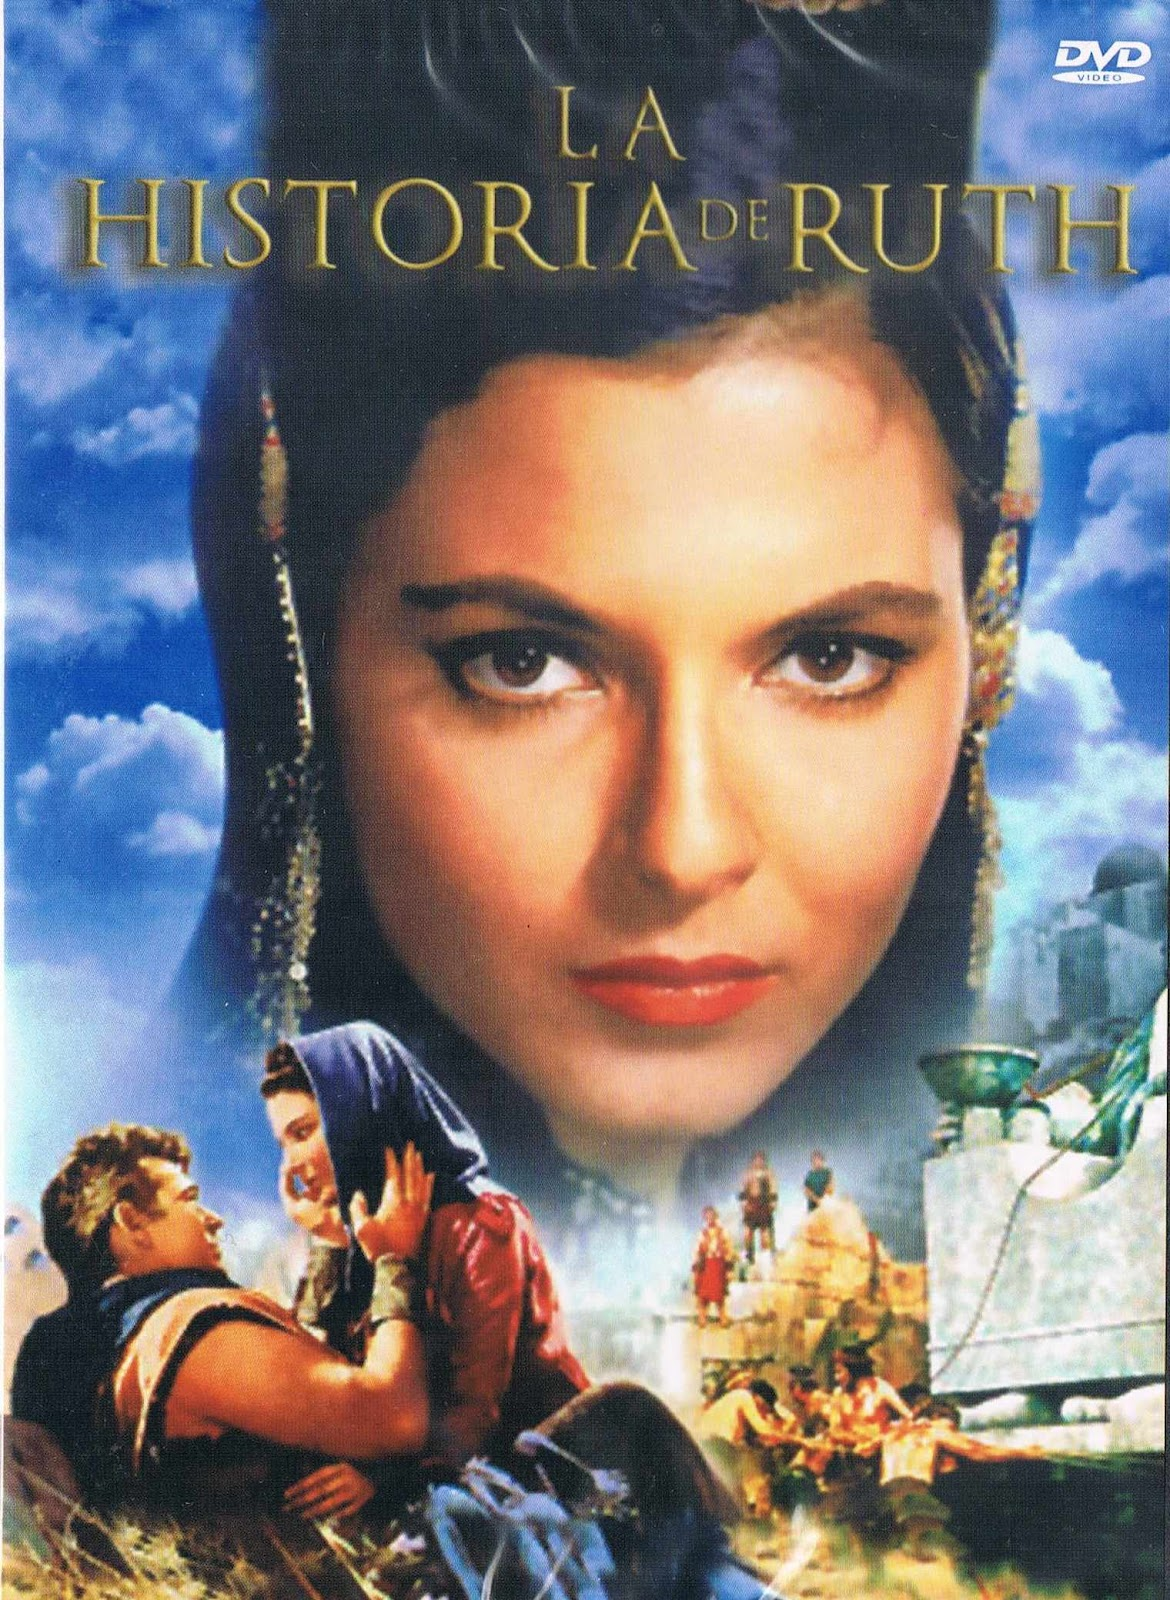 Download Filme A História de Ruth – DVDRip AVI Dual Áudio